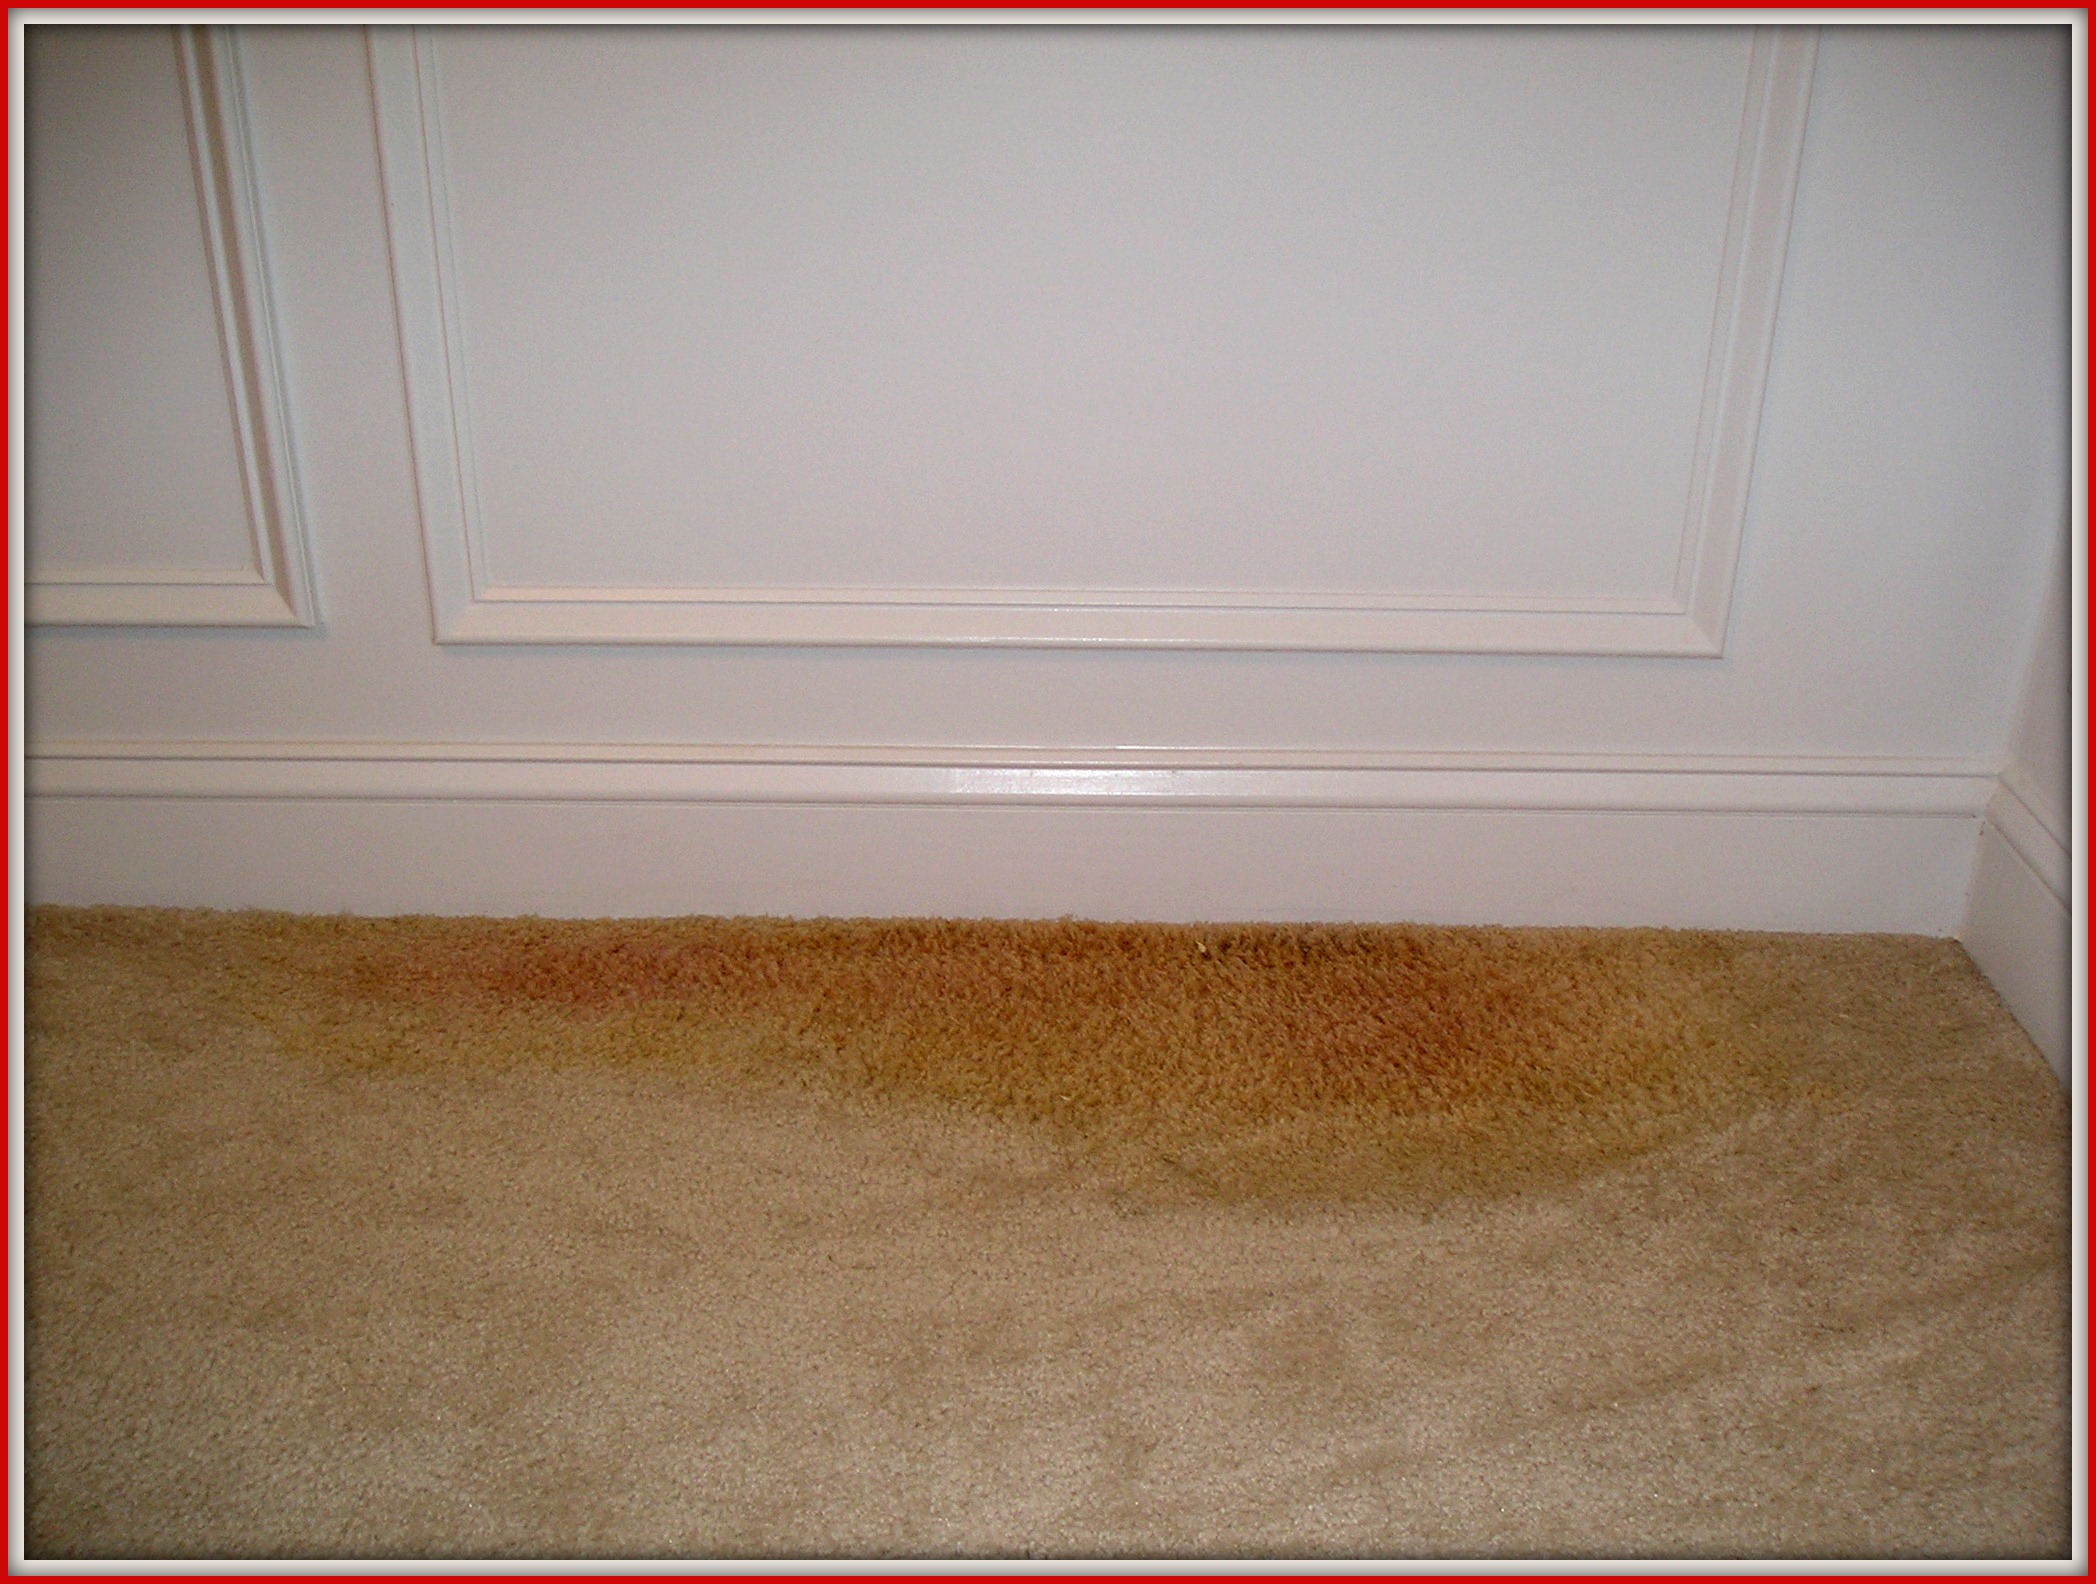 How To Remove Pet Odors Stains Smells From Damaged Carpet - Best dog urine odor remover for hardwood floors